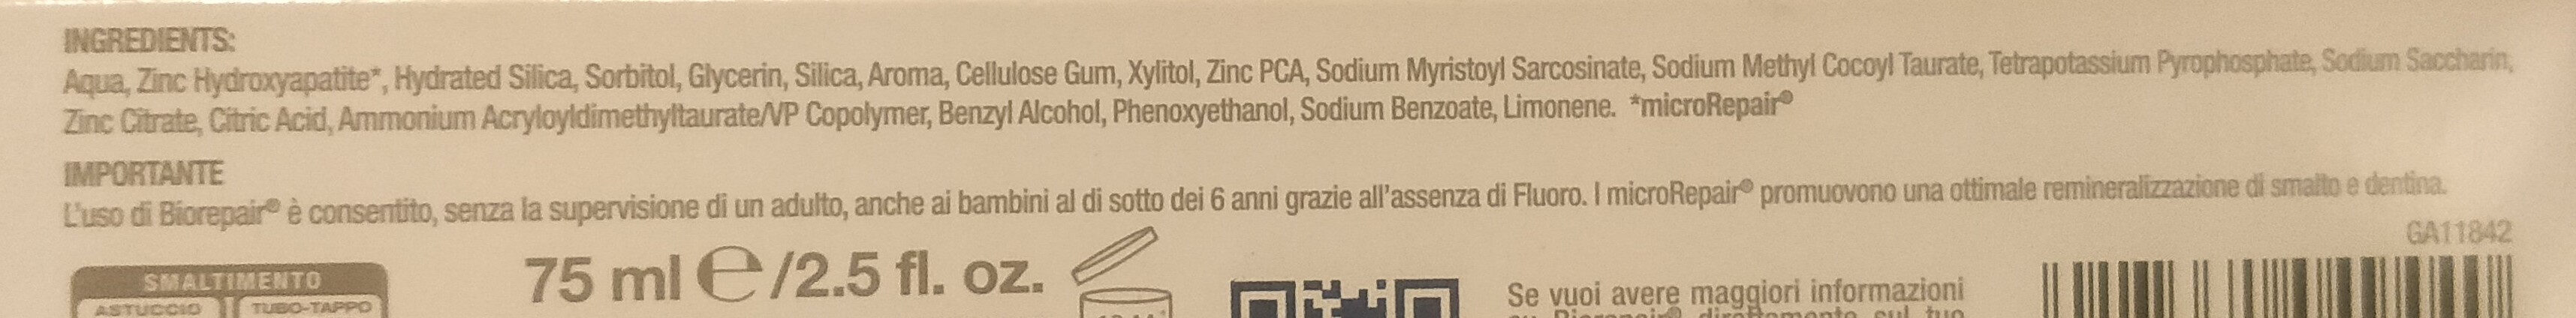 oral care pro - Ingredients - it